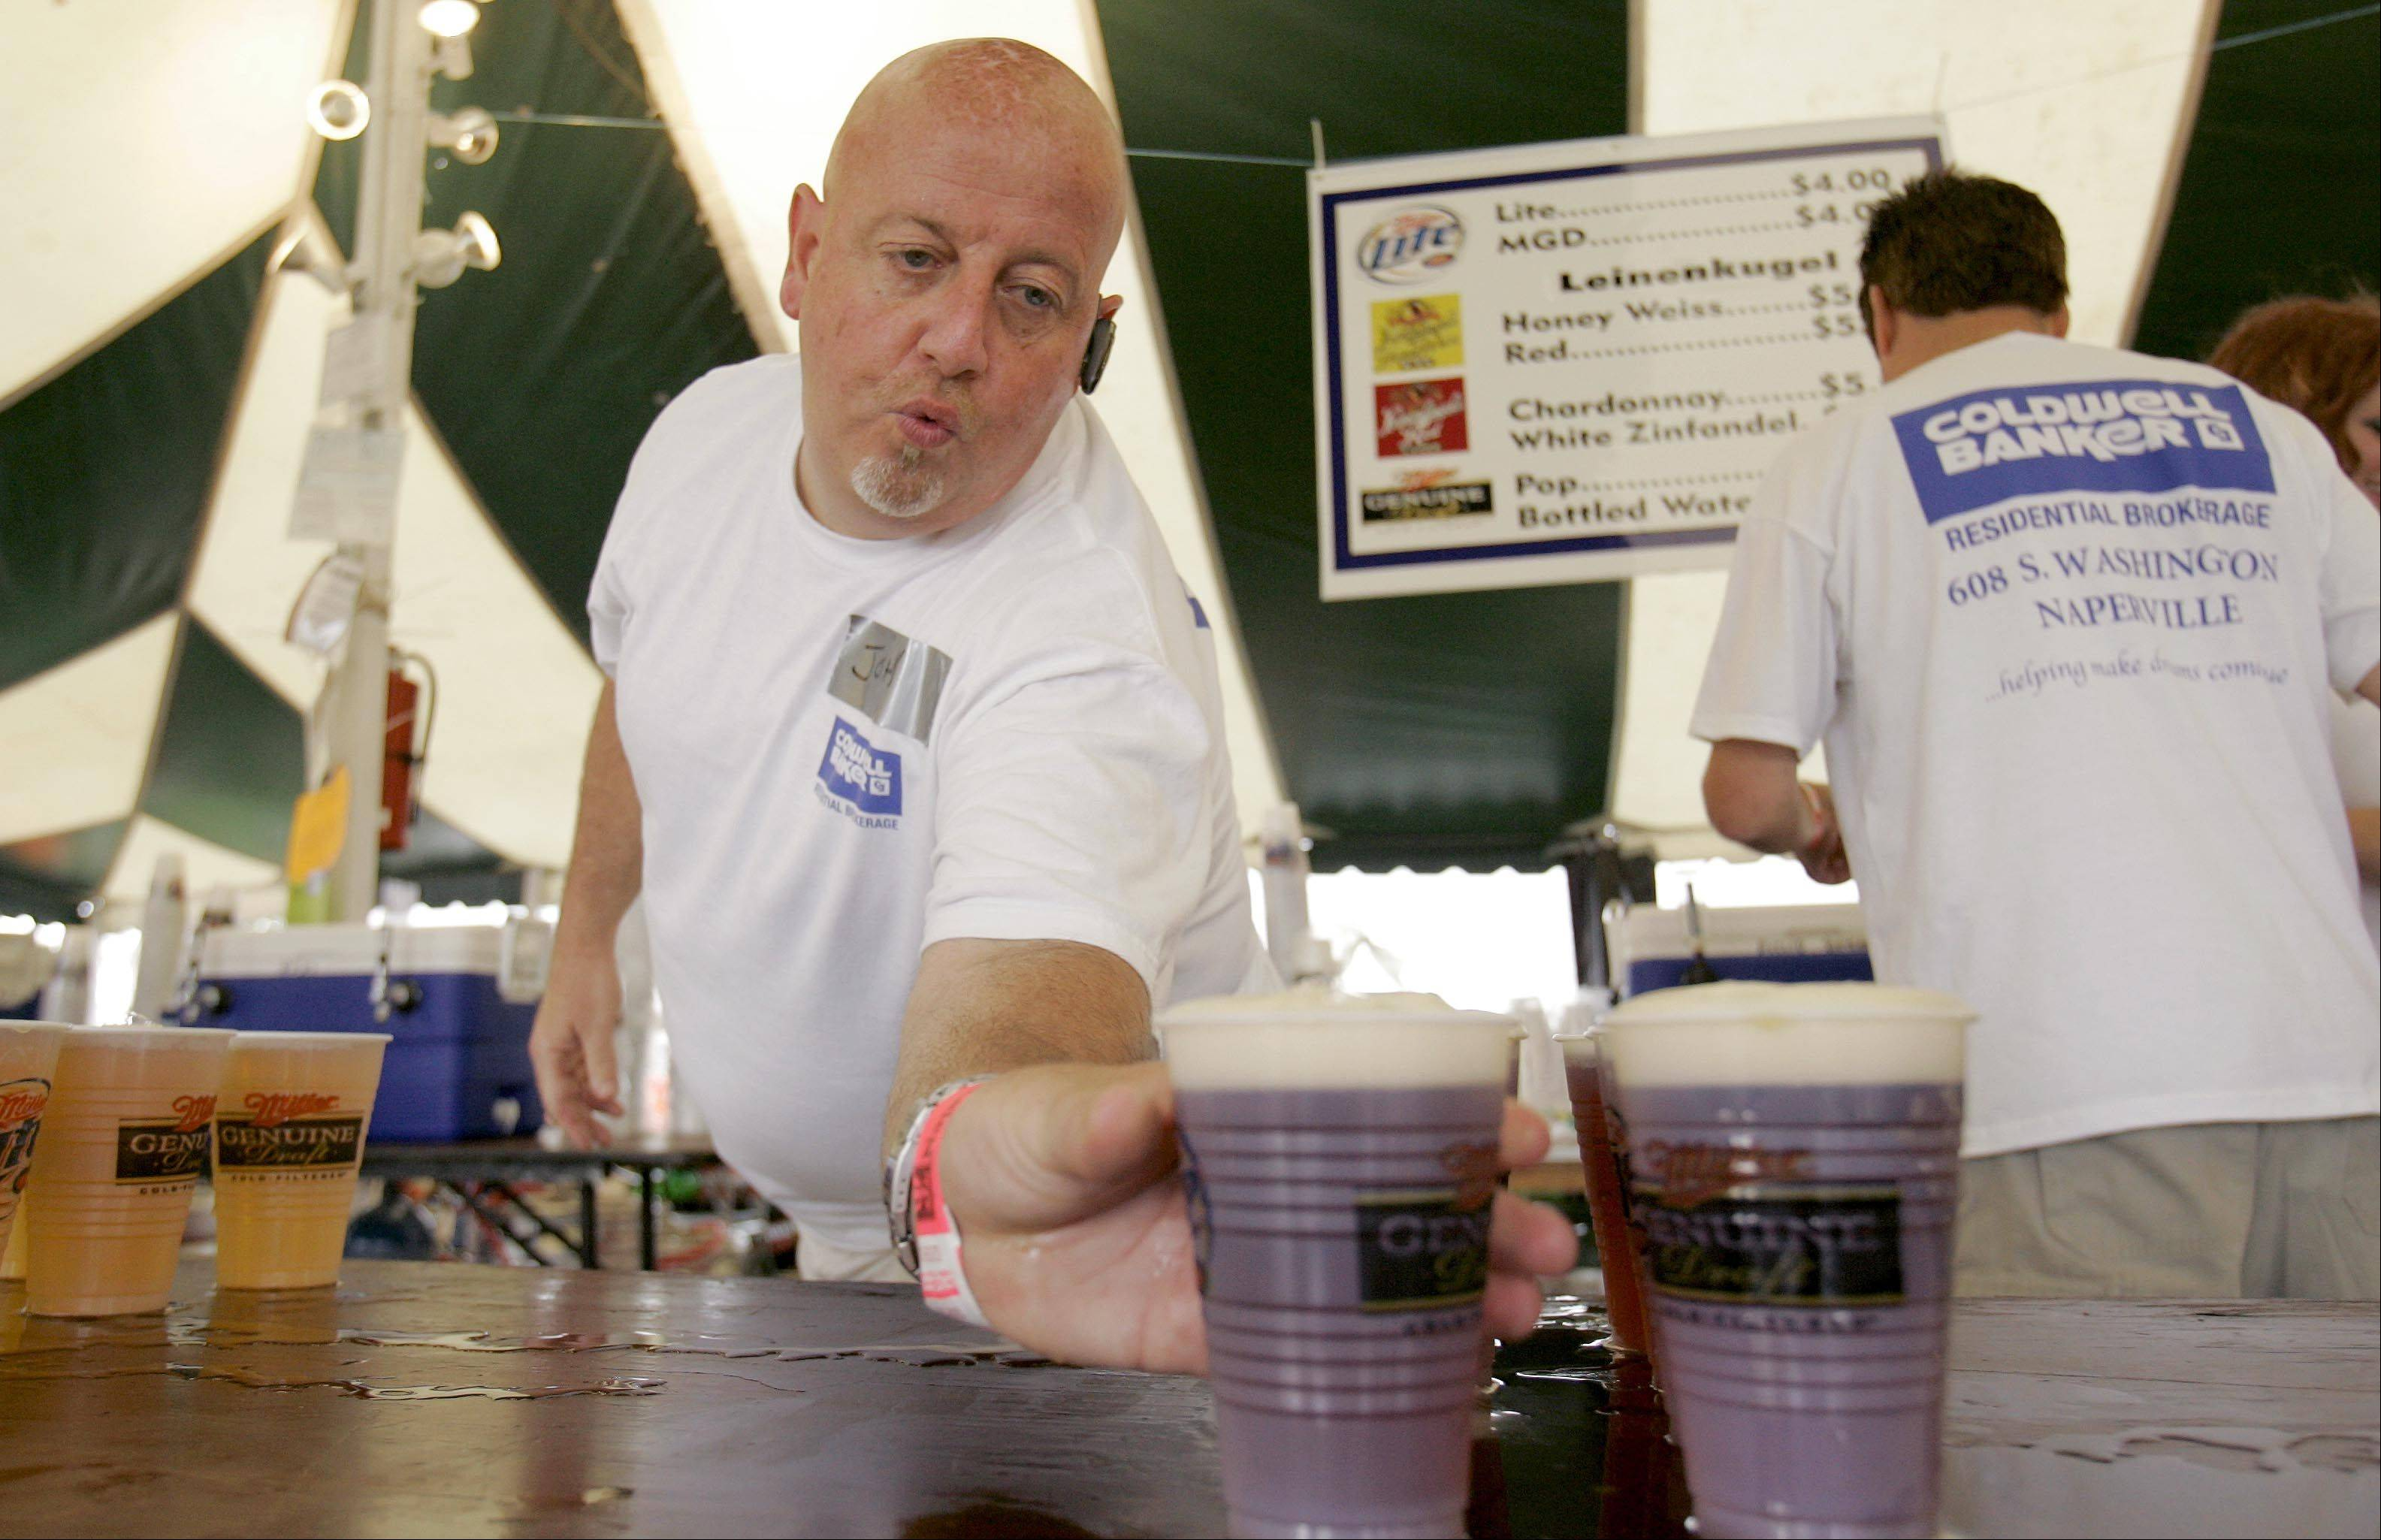 No more cash sales in Ribfest beer tents